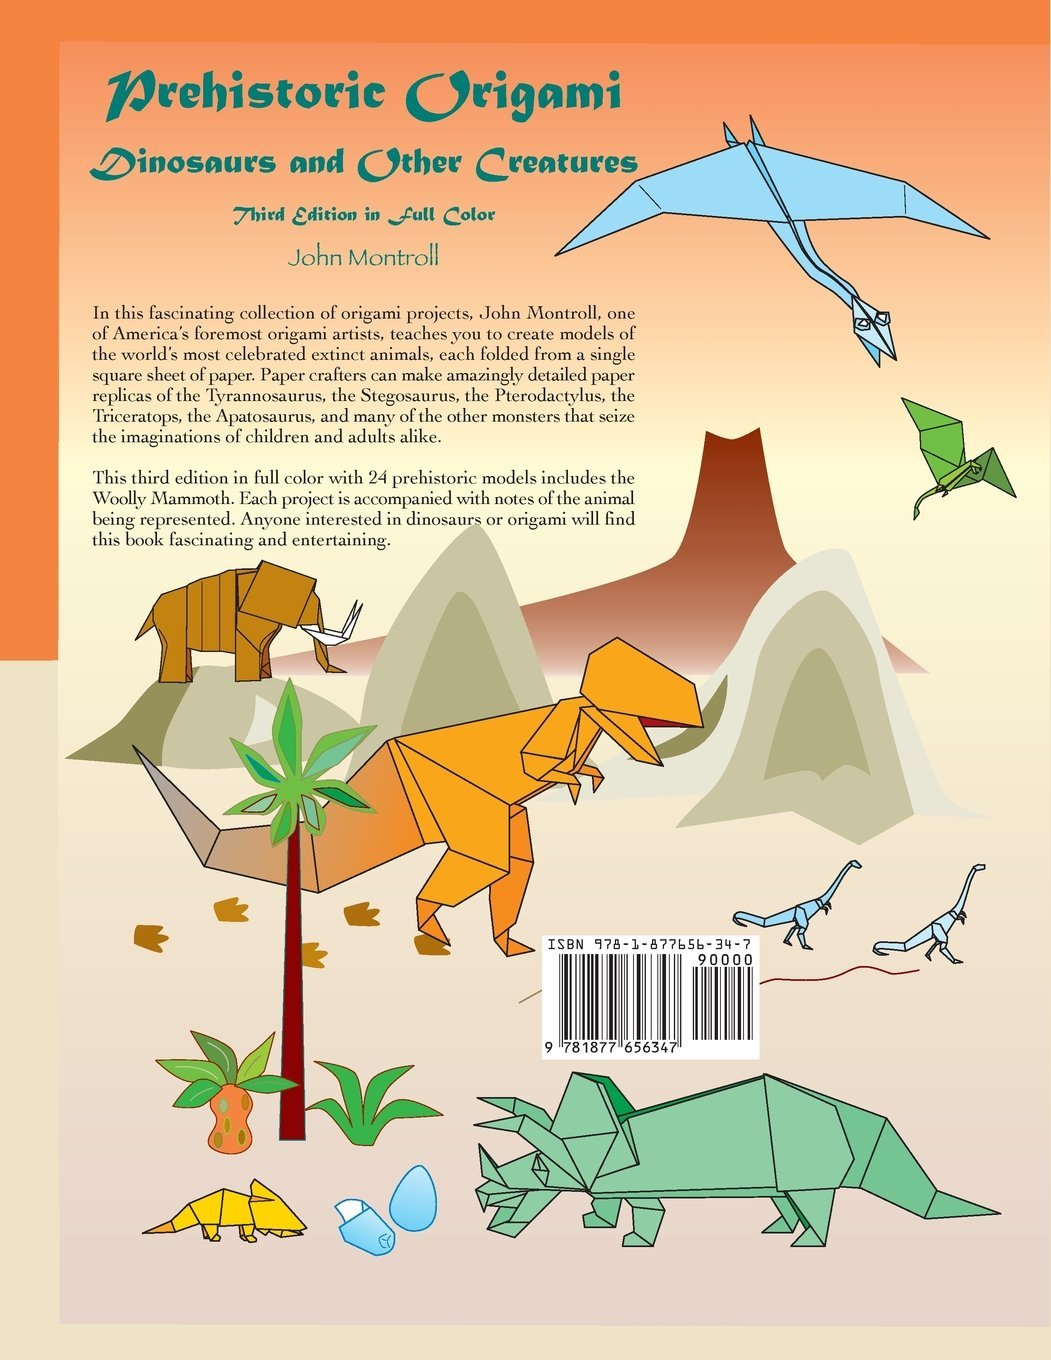 Prehistoric Origami Dinosaurs And Other Creatures John Montroll Dinosaur Diagrams 9781877656347 Books